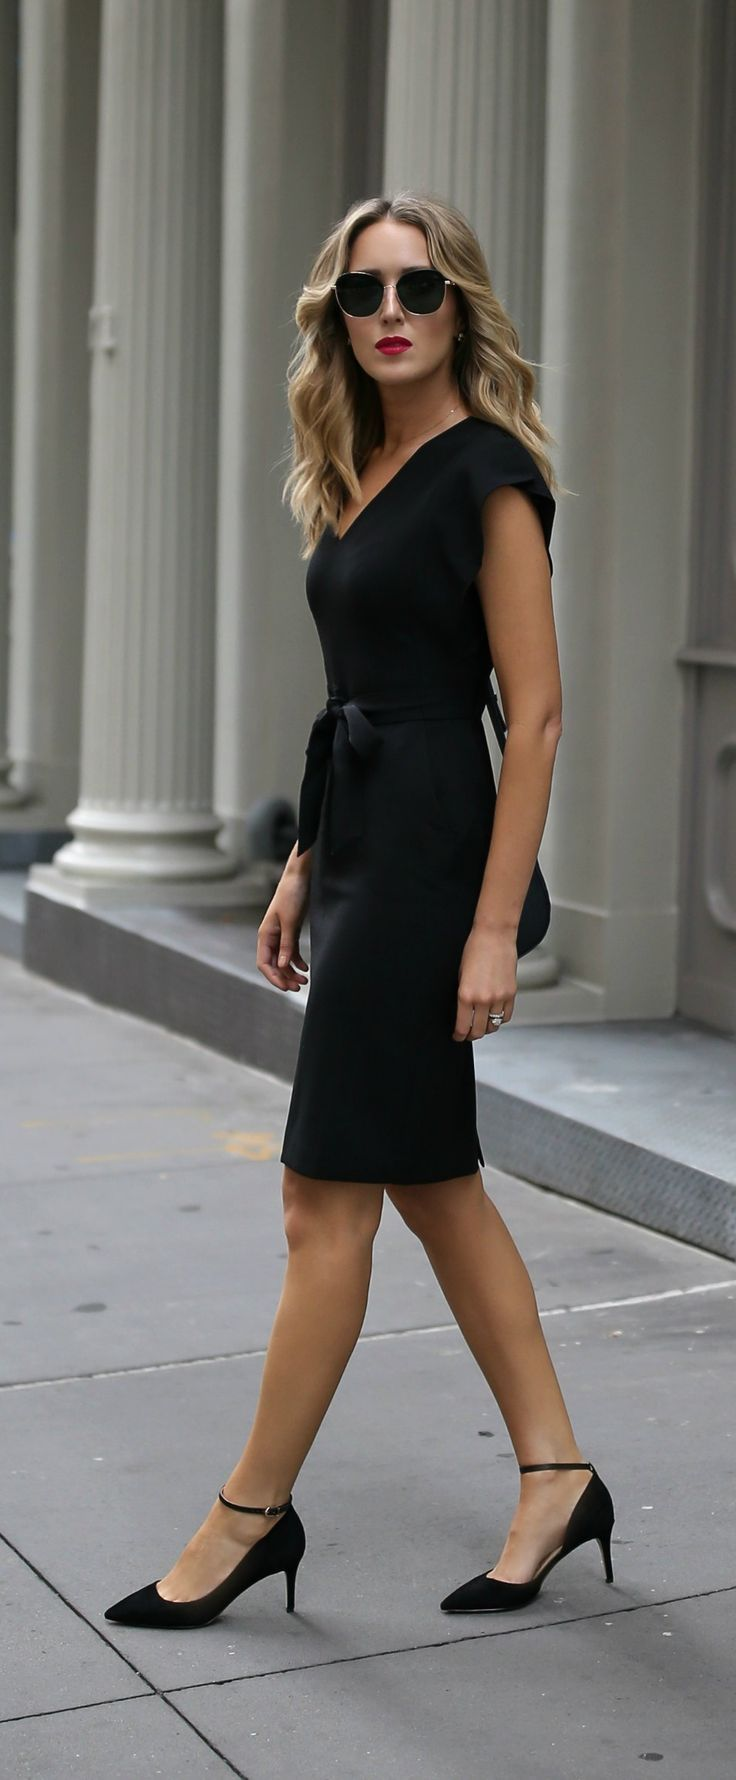 Classic black sheath dress ankle strap black pumps eliza j sam